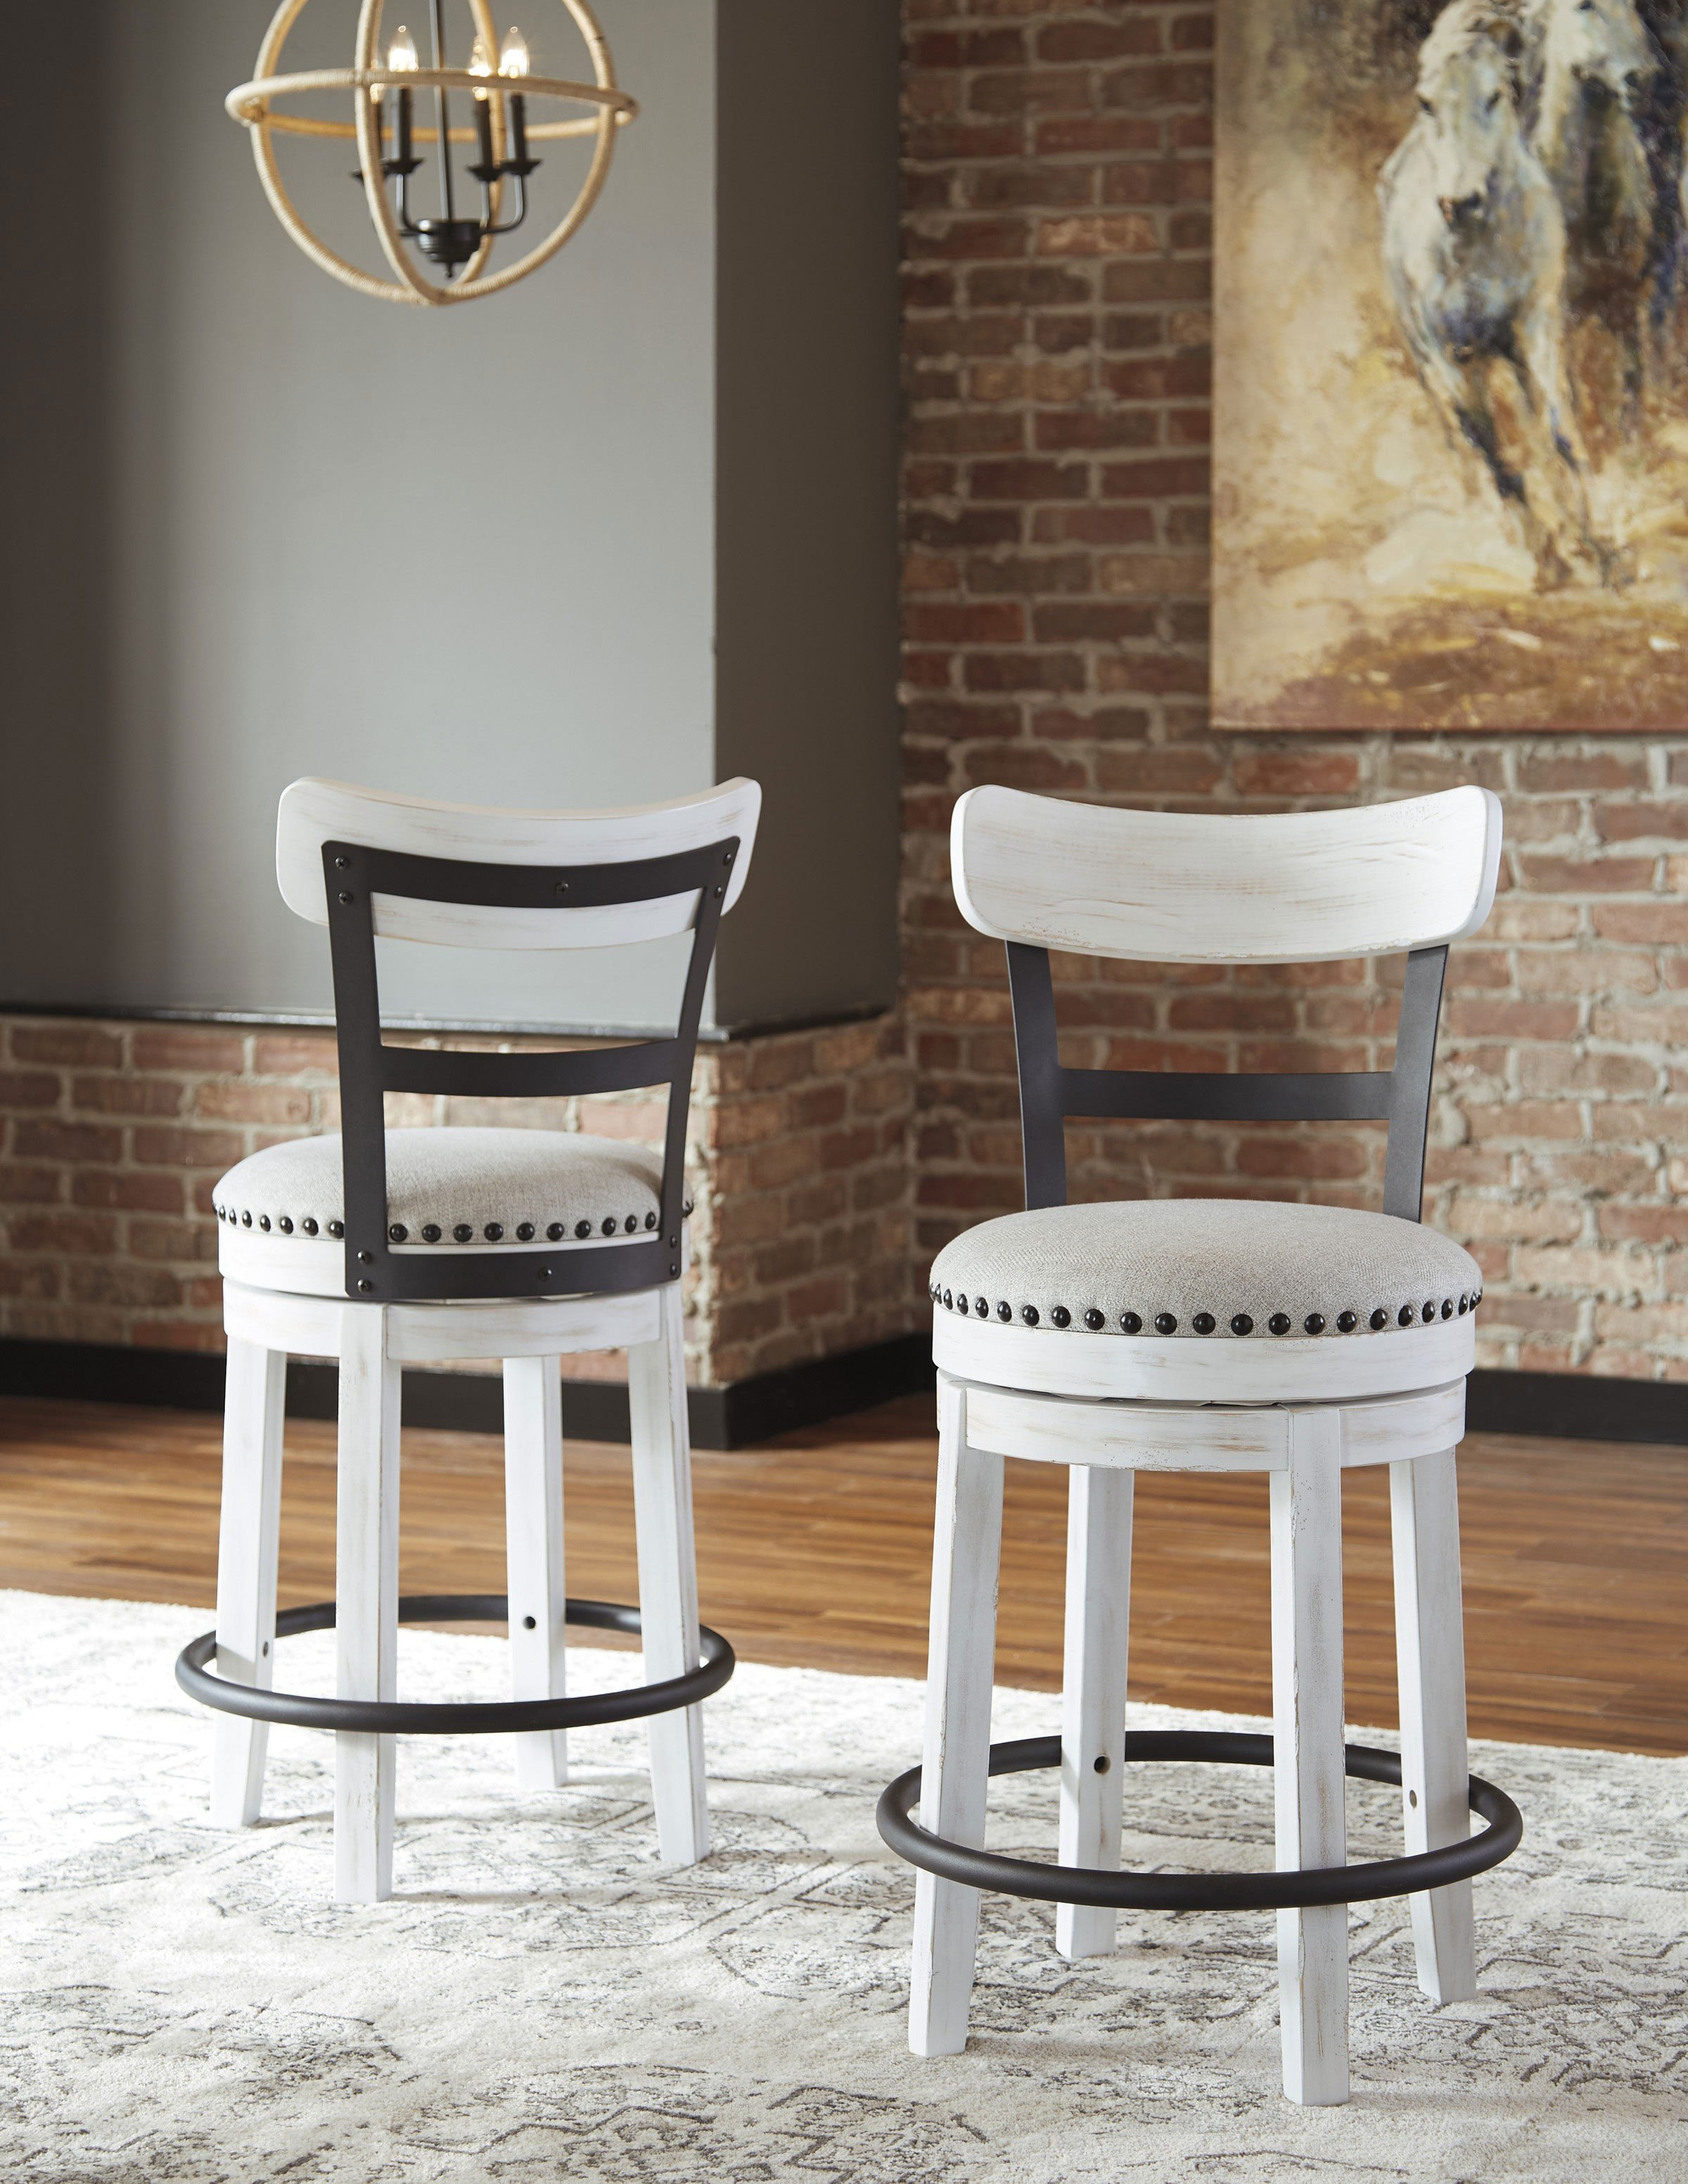 Ashley White Bedroom Furniture Beautiful ashley Furniture Valebeck Upholstered Swivel Barstool In White